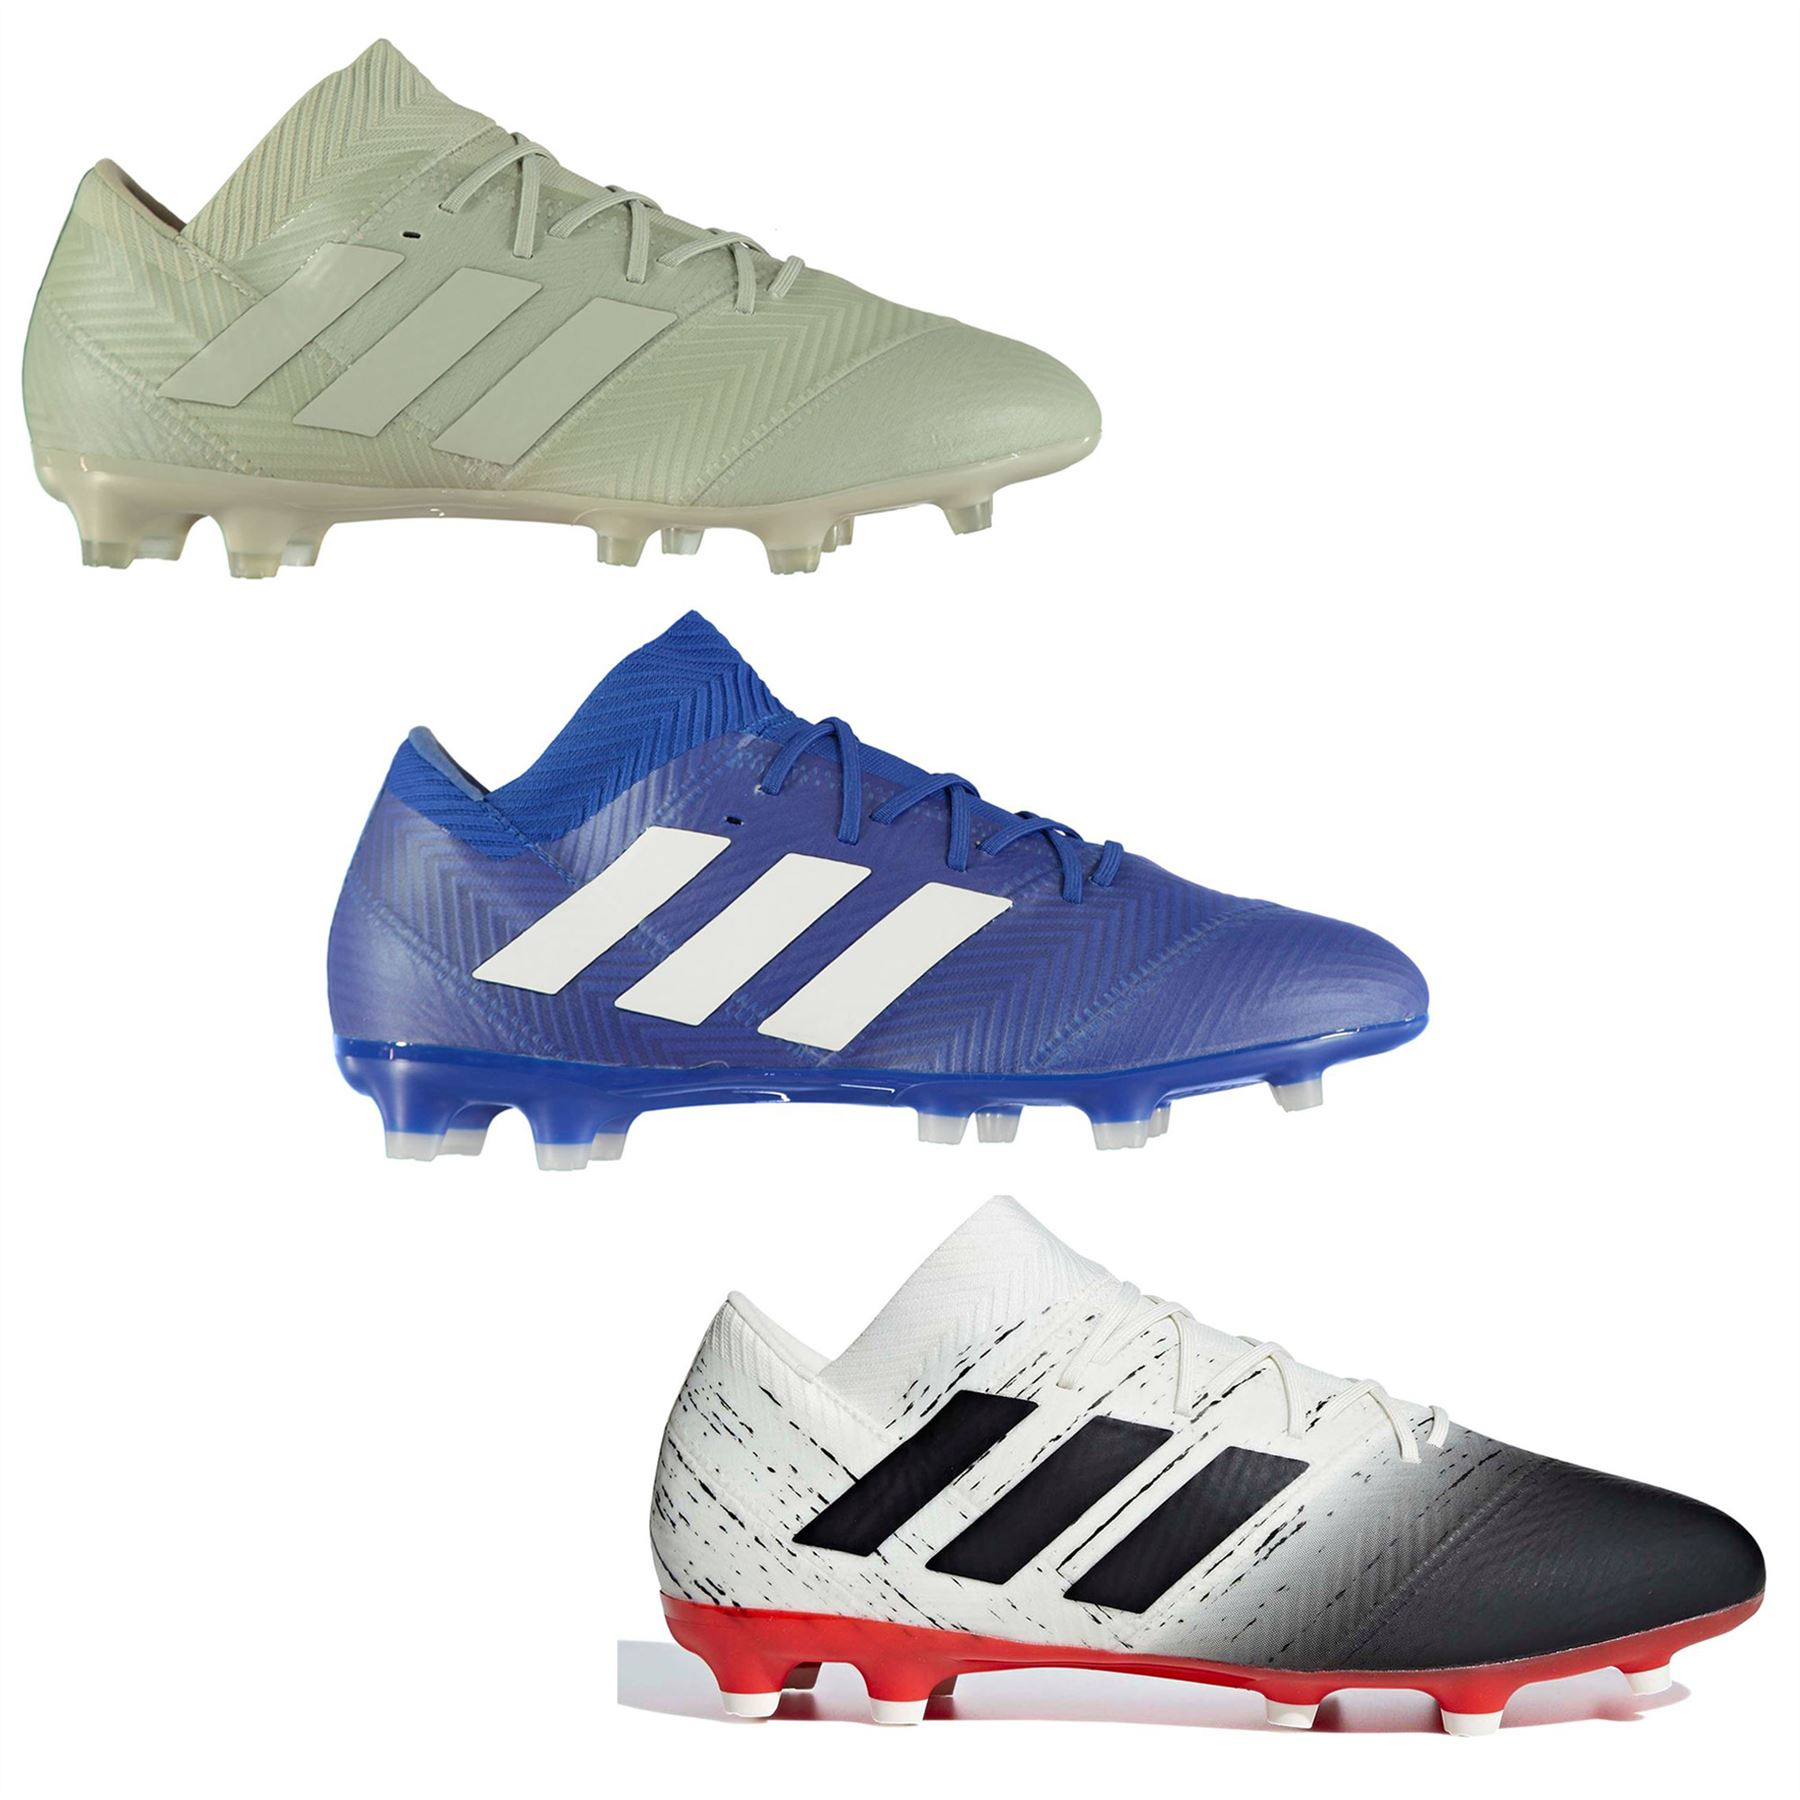 c8259bdd ... adidas Nemeziz 18.2 FG Firm Ground Football Boots Mens Soccer Shoes  Cleats ...